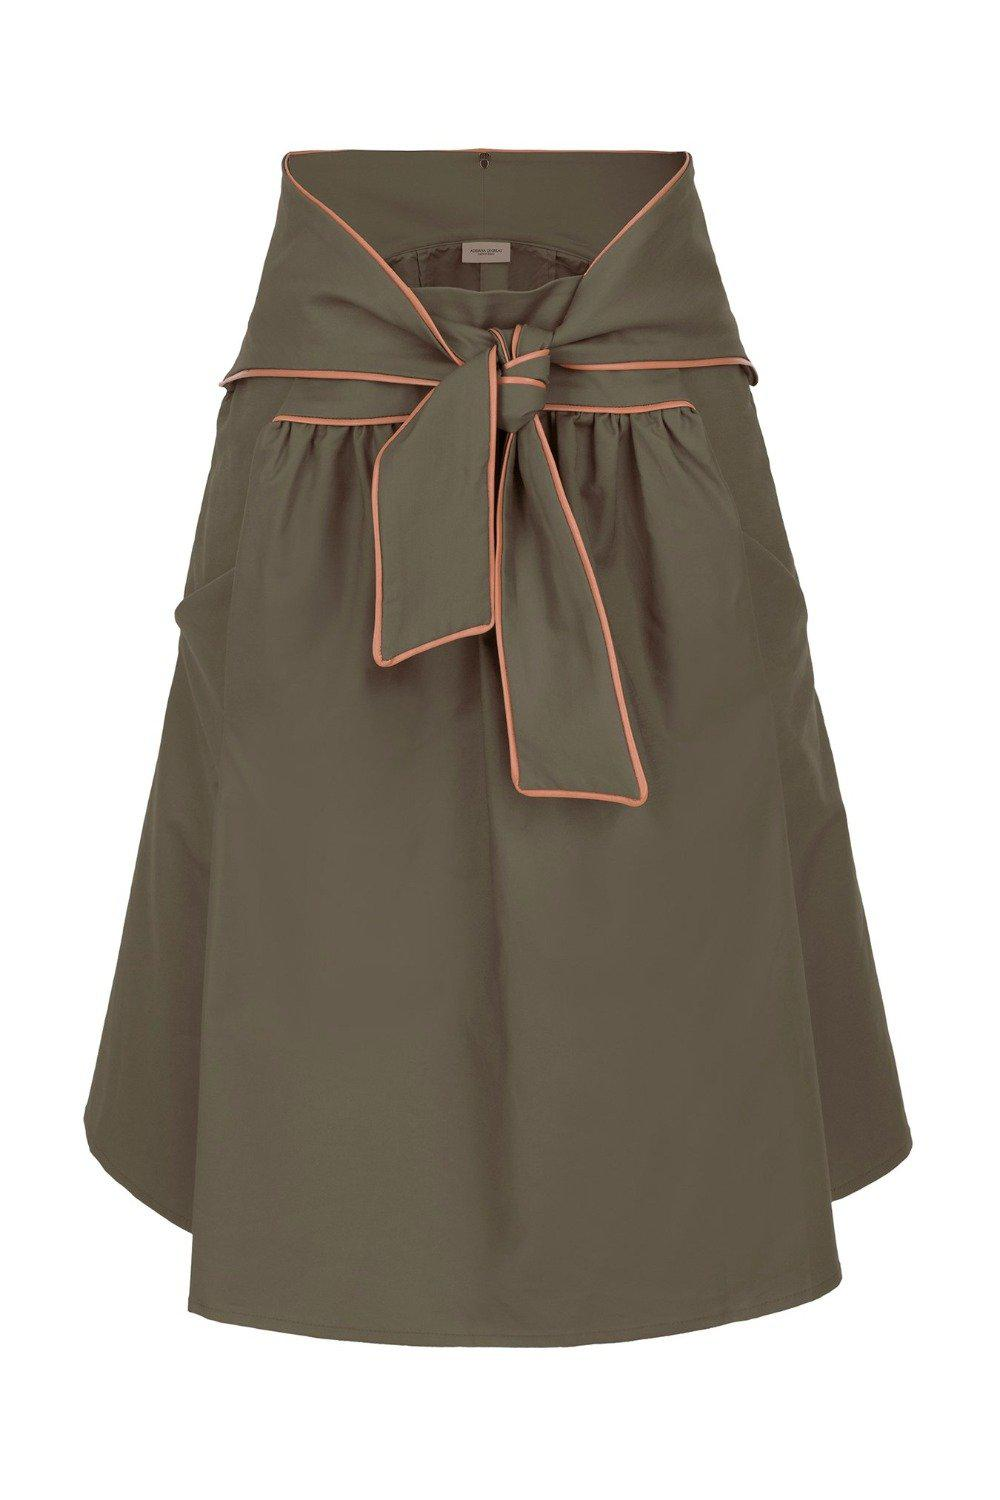 Horse Skin Solid Short Skirt with Knot Detail